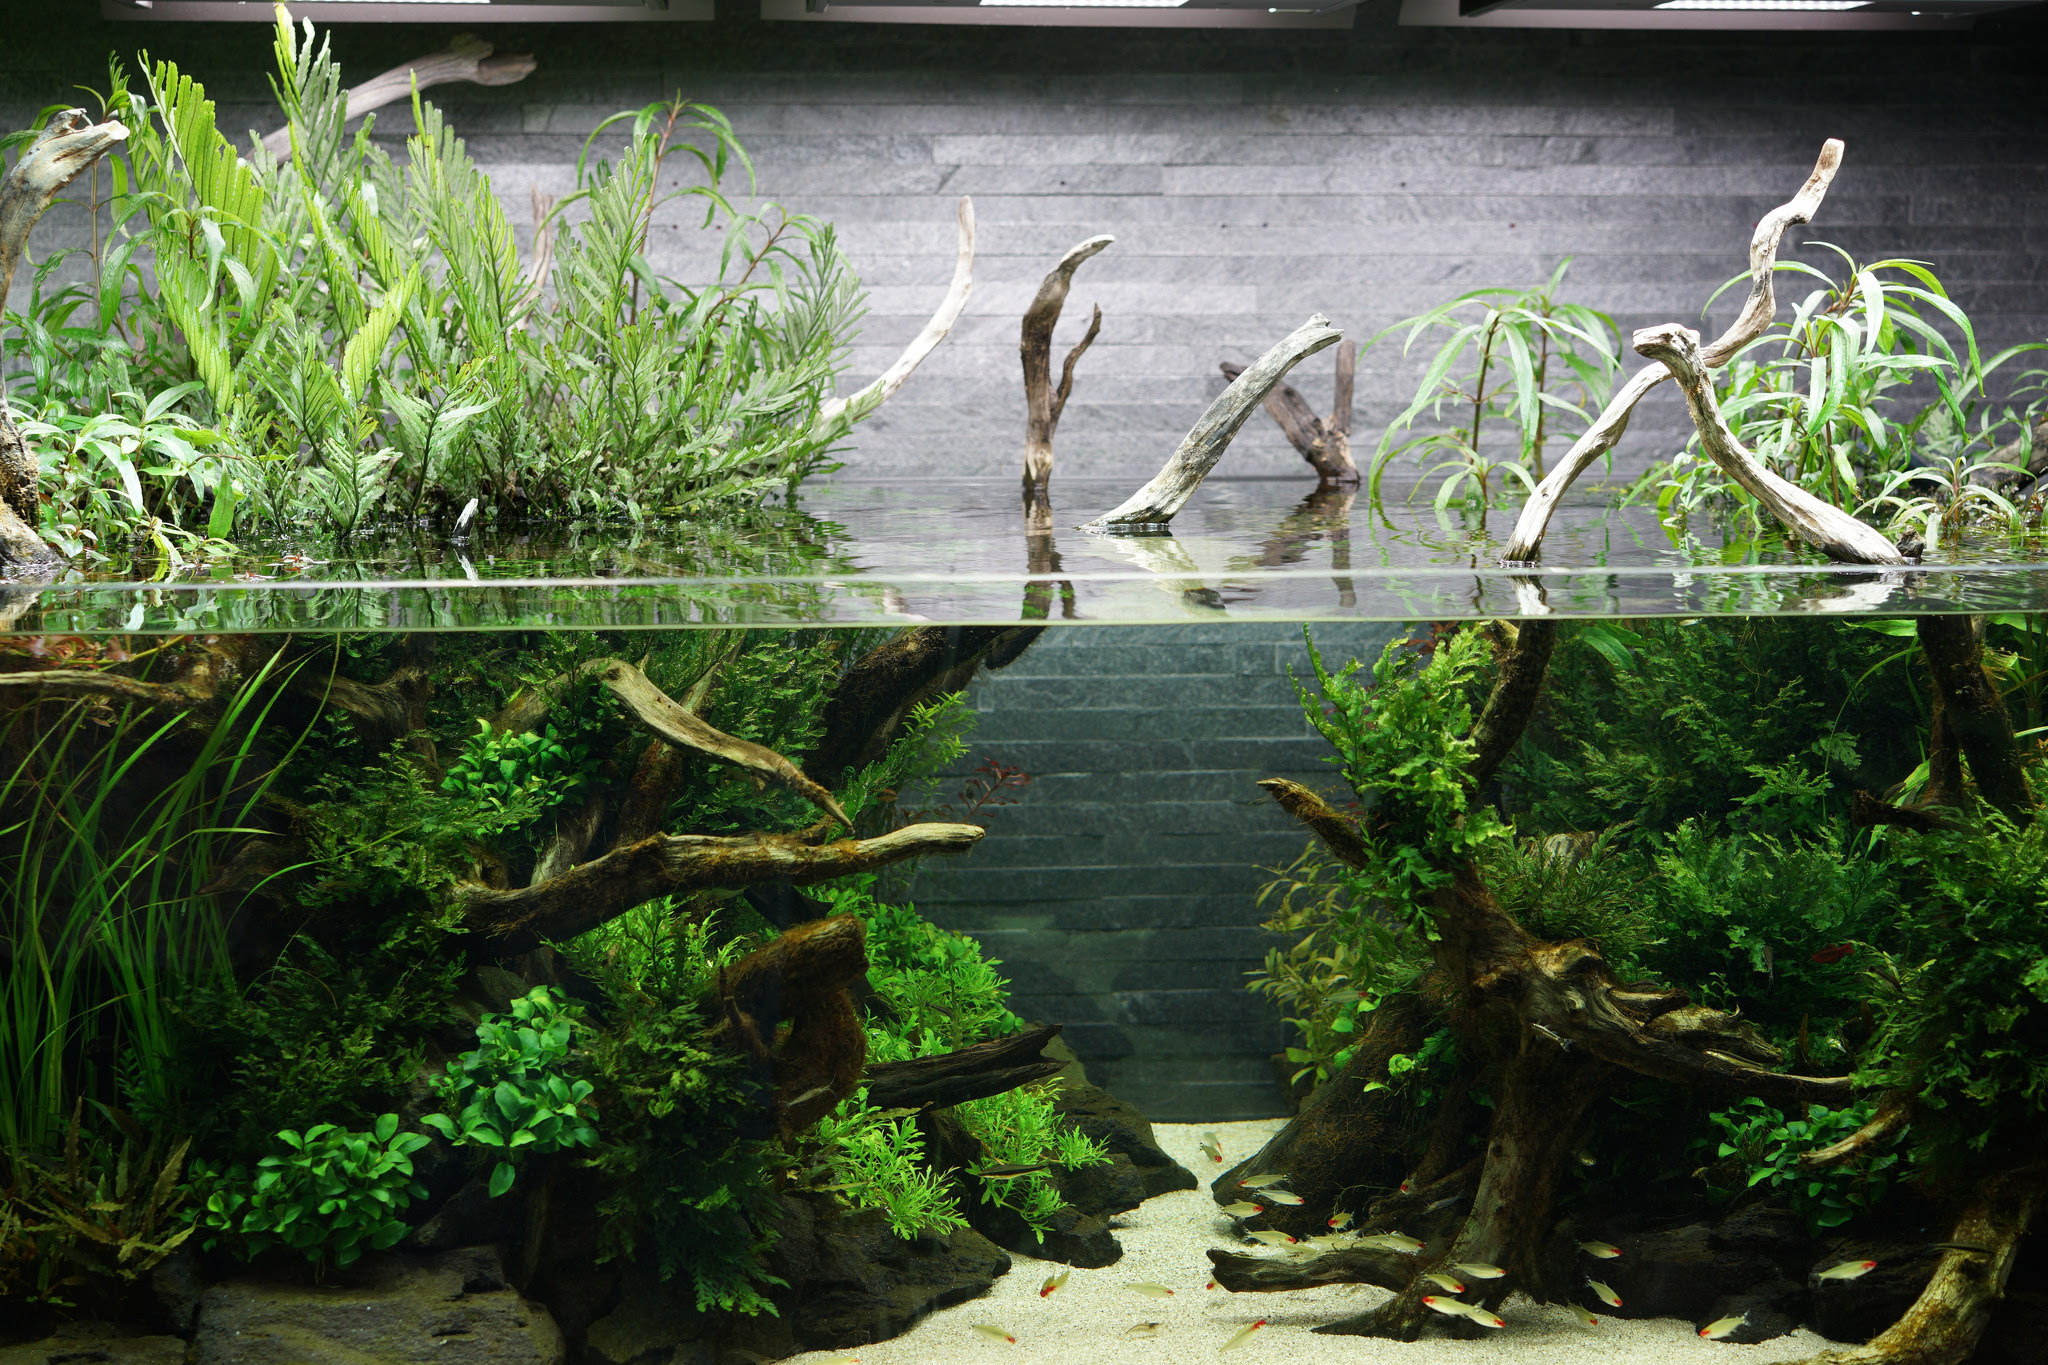 Aquascape Takashi Amano - Aquascape Ideas